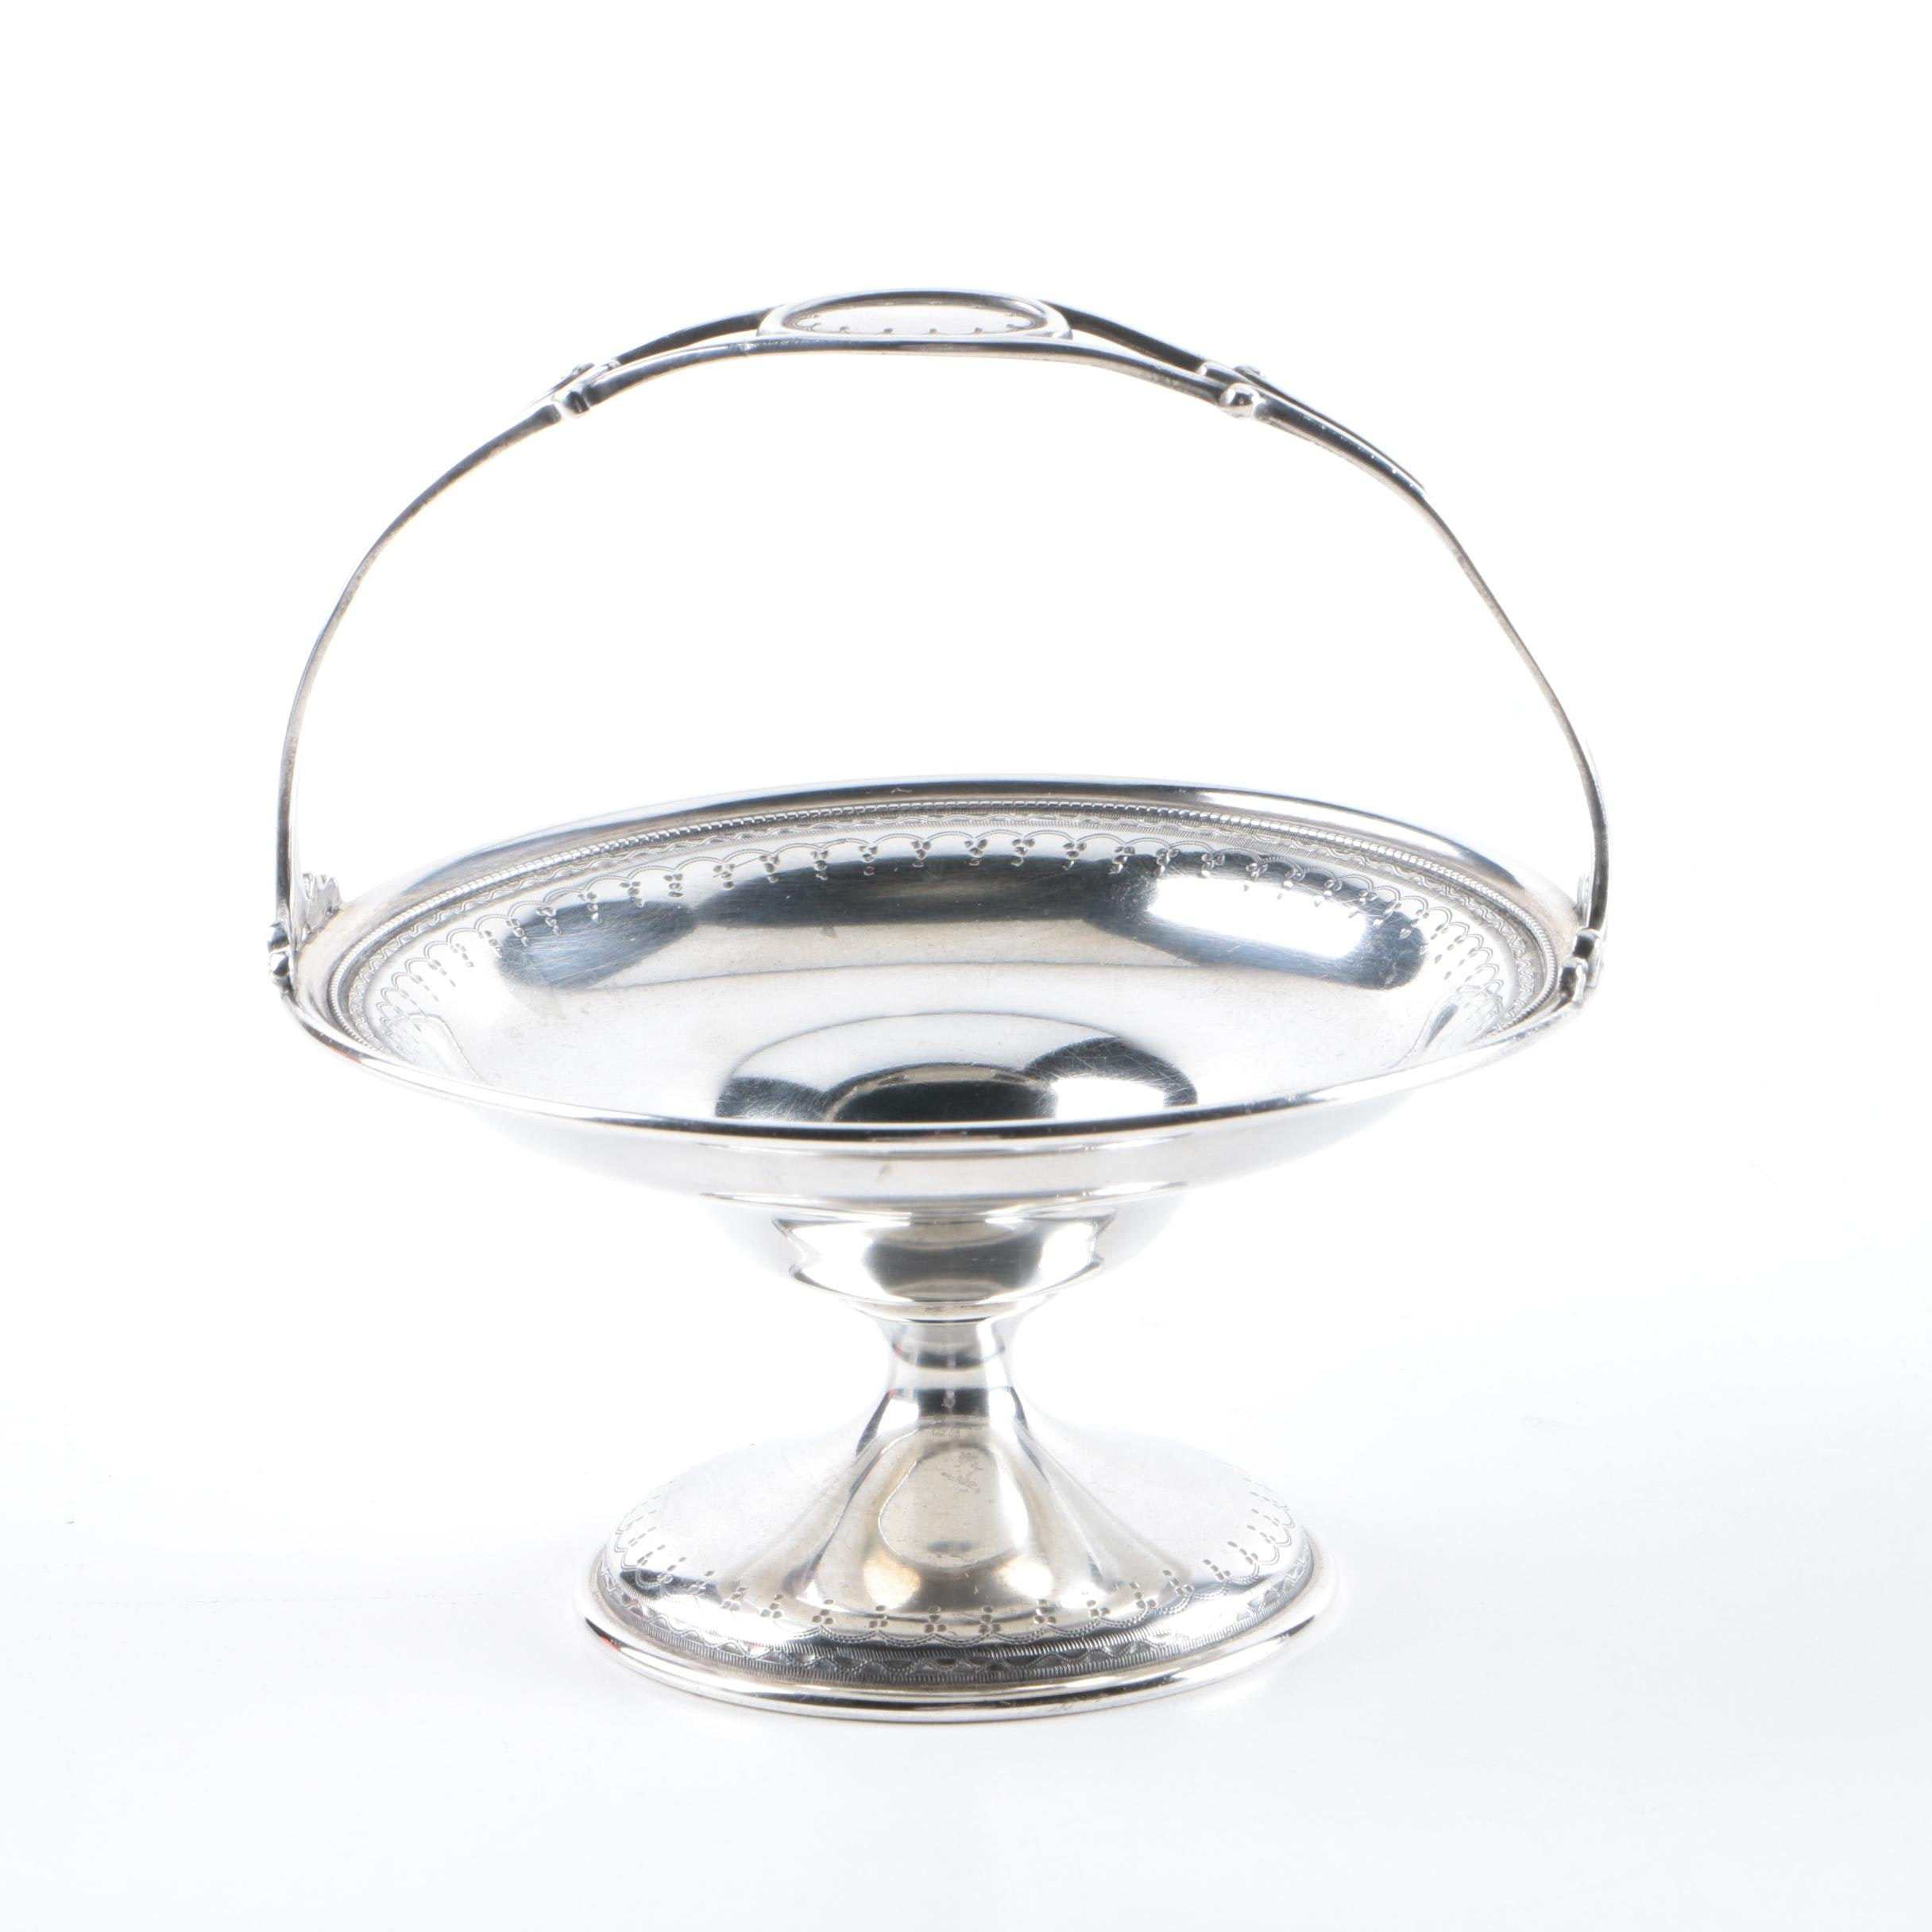 Wm. B. Durgin Co. Sterling Silver Footed Basket